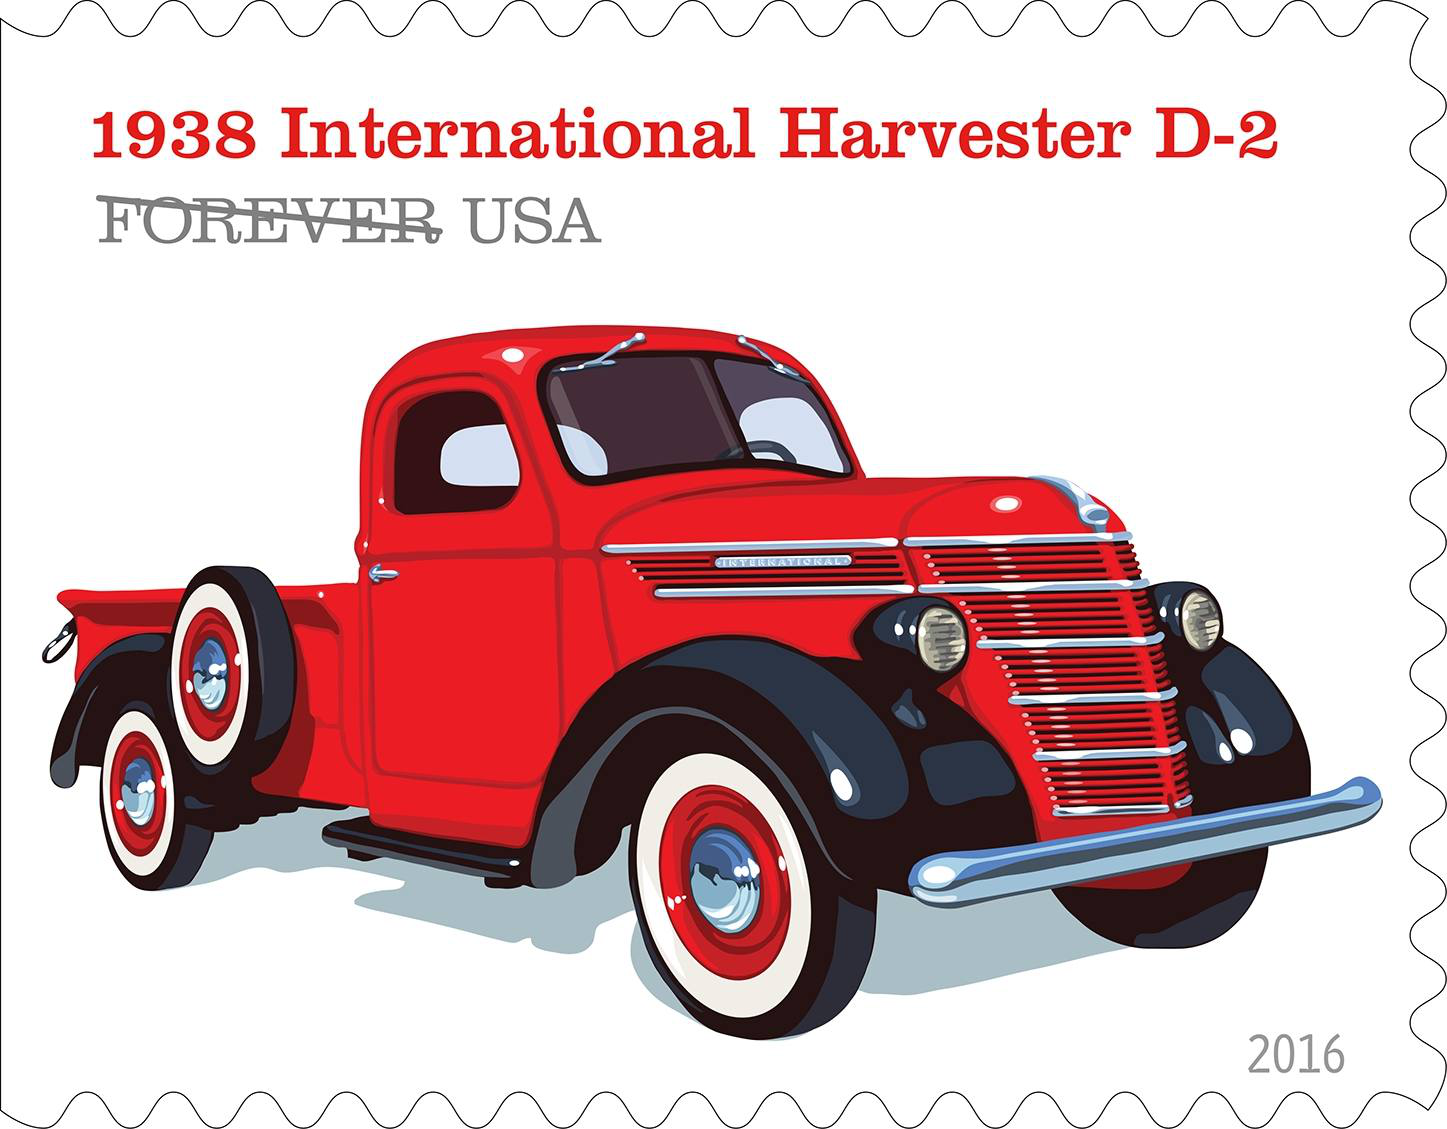 The 1938 International Harvester D-2 had a distinct barrel-shaped grille, and its elegant styling mirrored the look of luxury automobiles of the era.